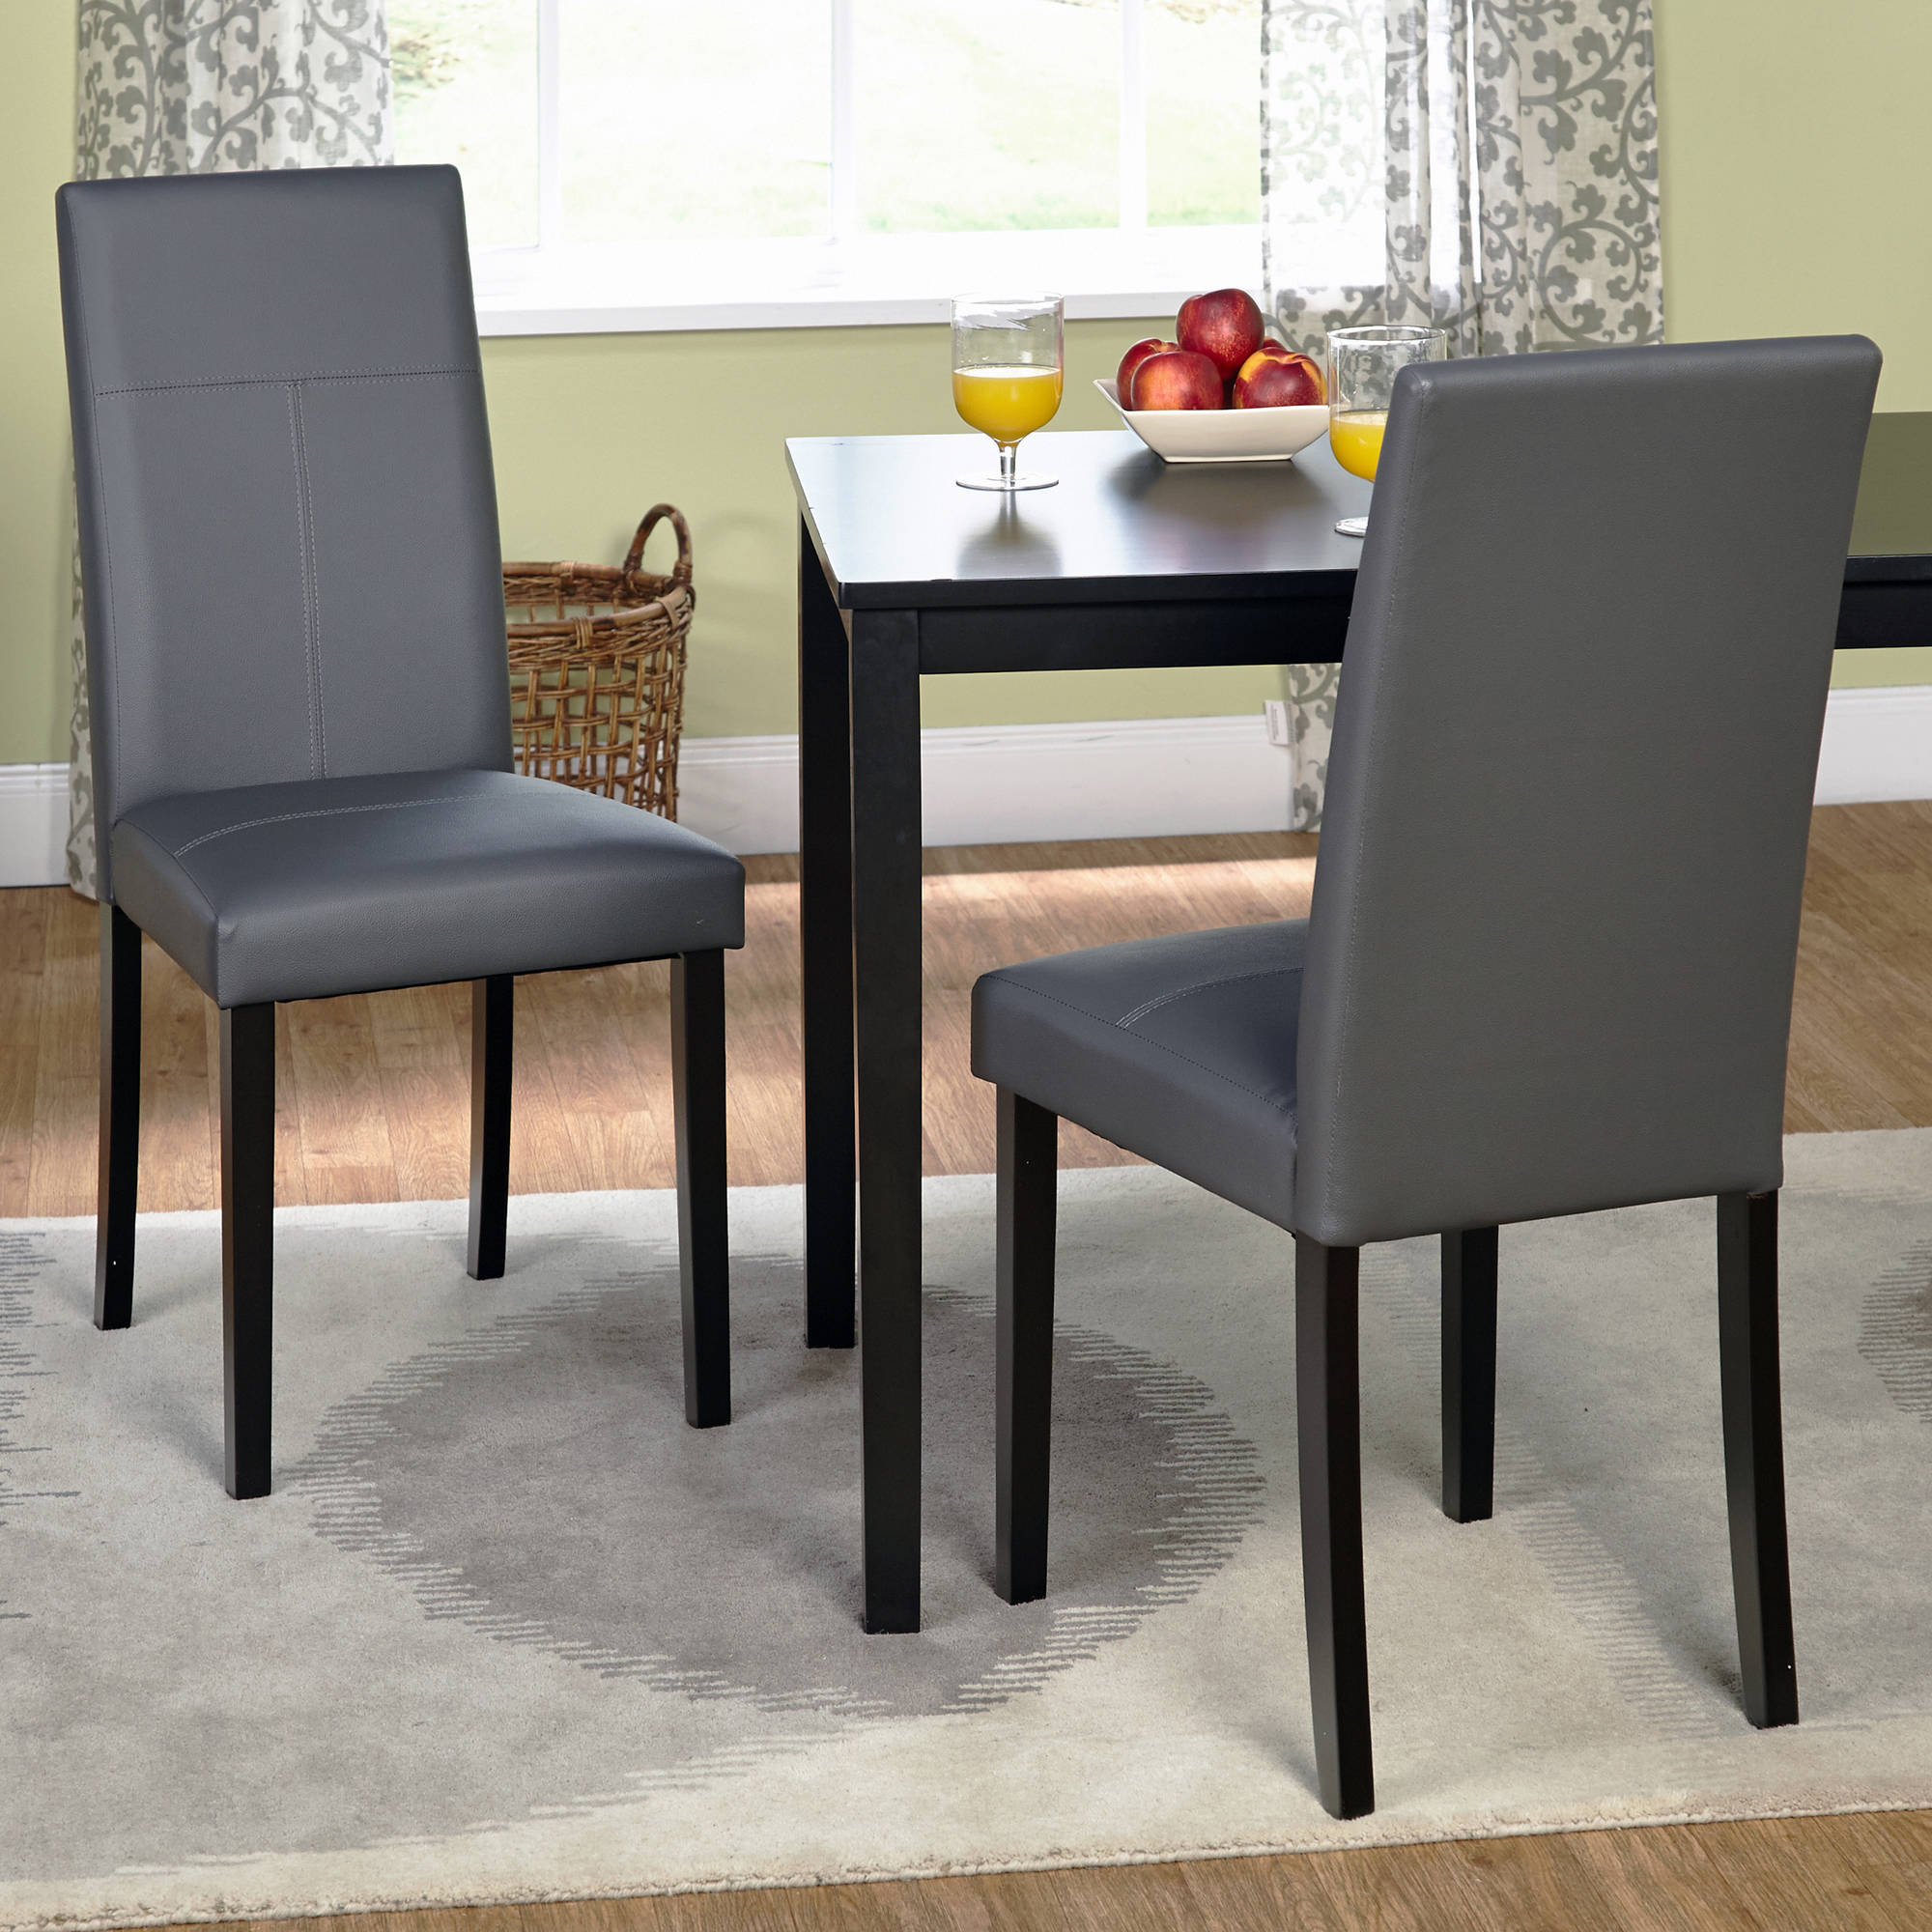 furniture item dining drp with leather legs coaster chairs room collections modern black chrome faux chair fine